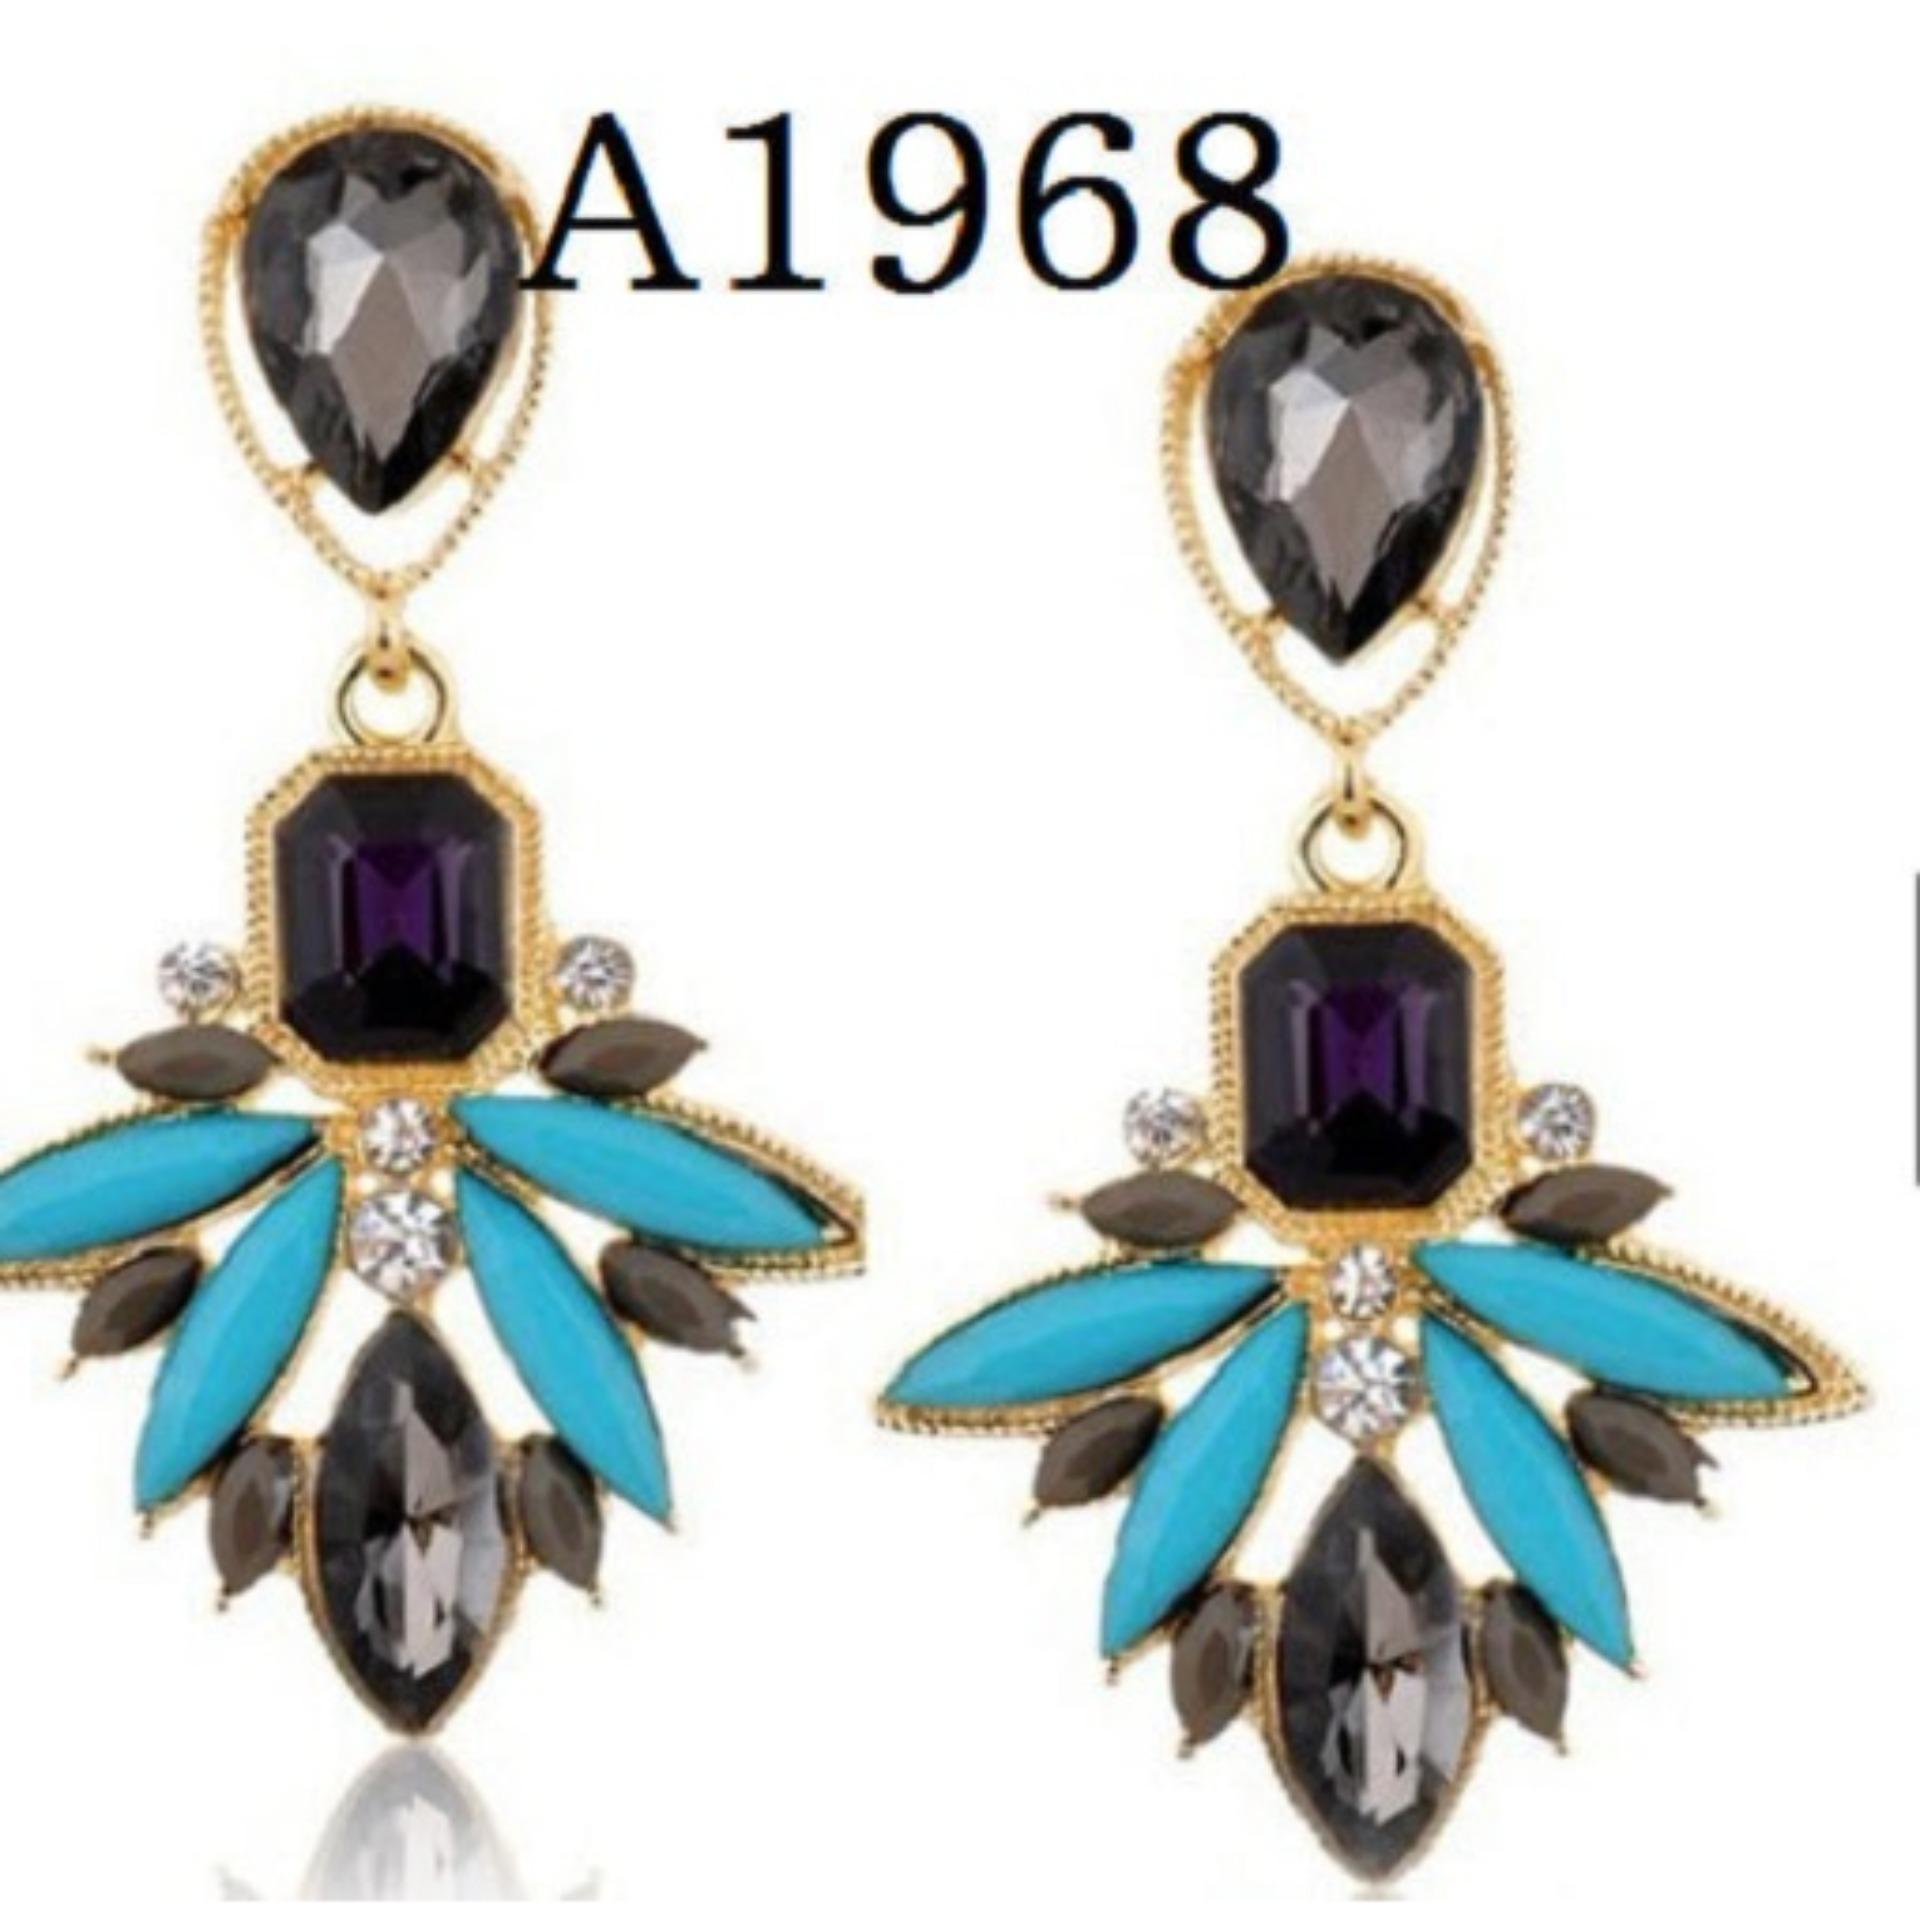 Anting Korea Panjang (Jual Perhiasan Set Gelang Cincin Kalung Xuping)